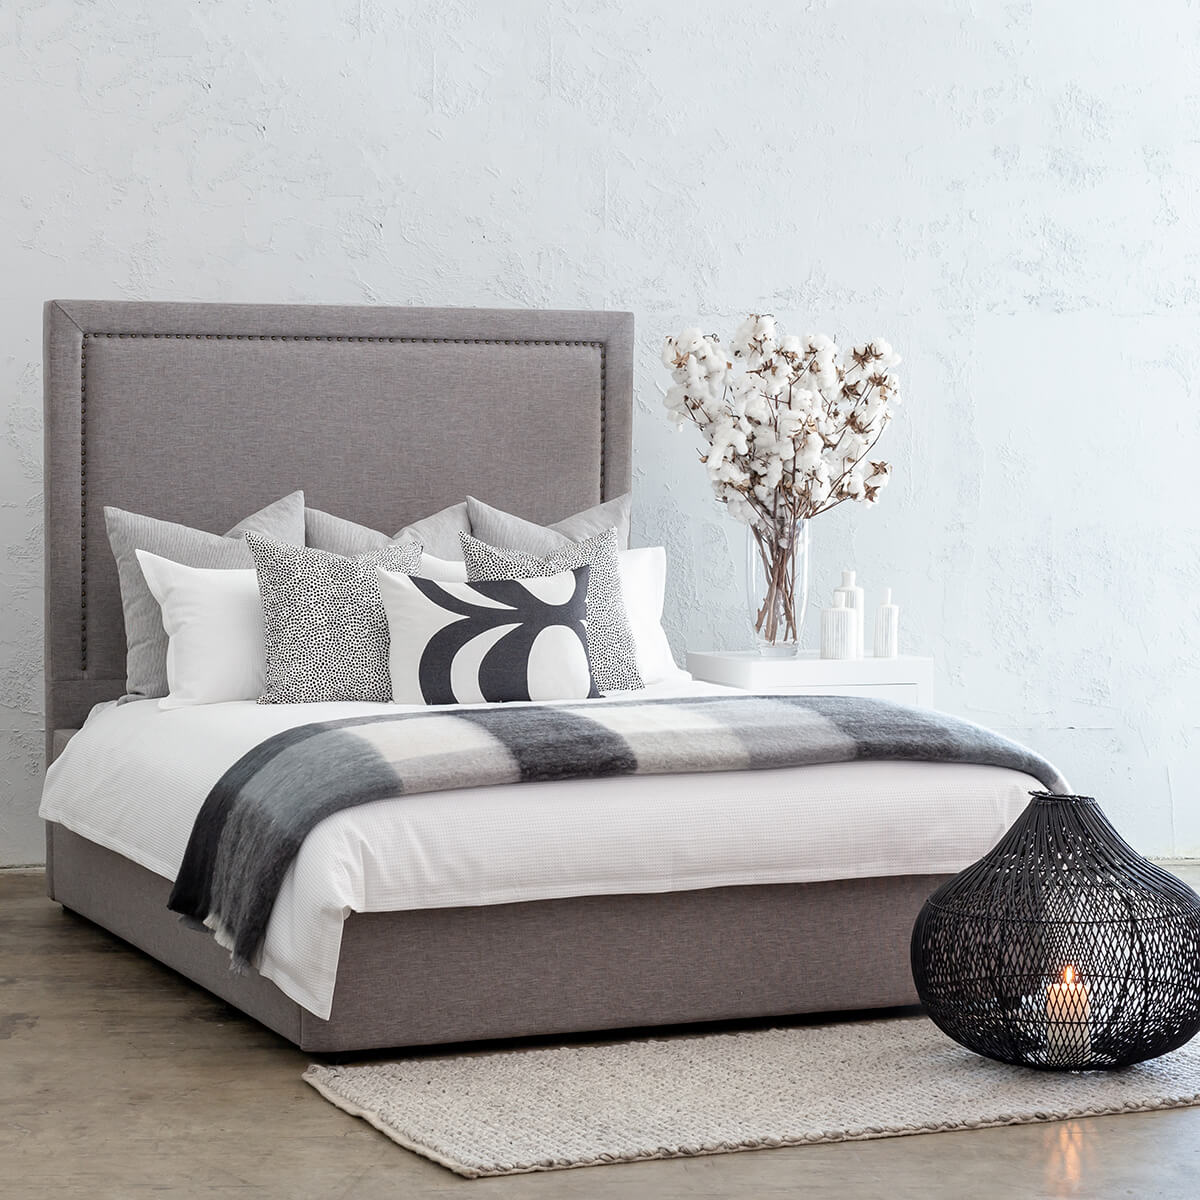 MARLE BED WITH STUDDED SQUARE FRAME   |  GREY LINEN  |  KING SIZE BED